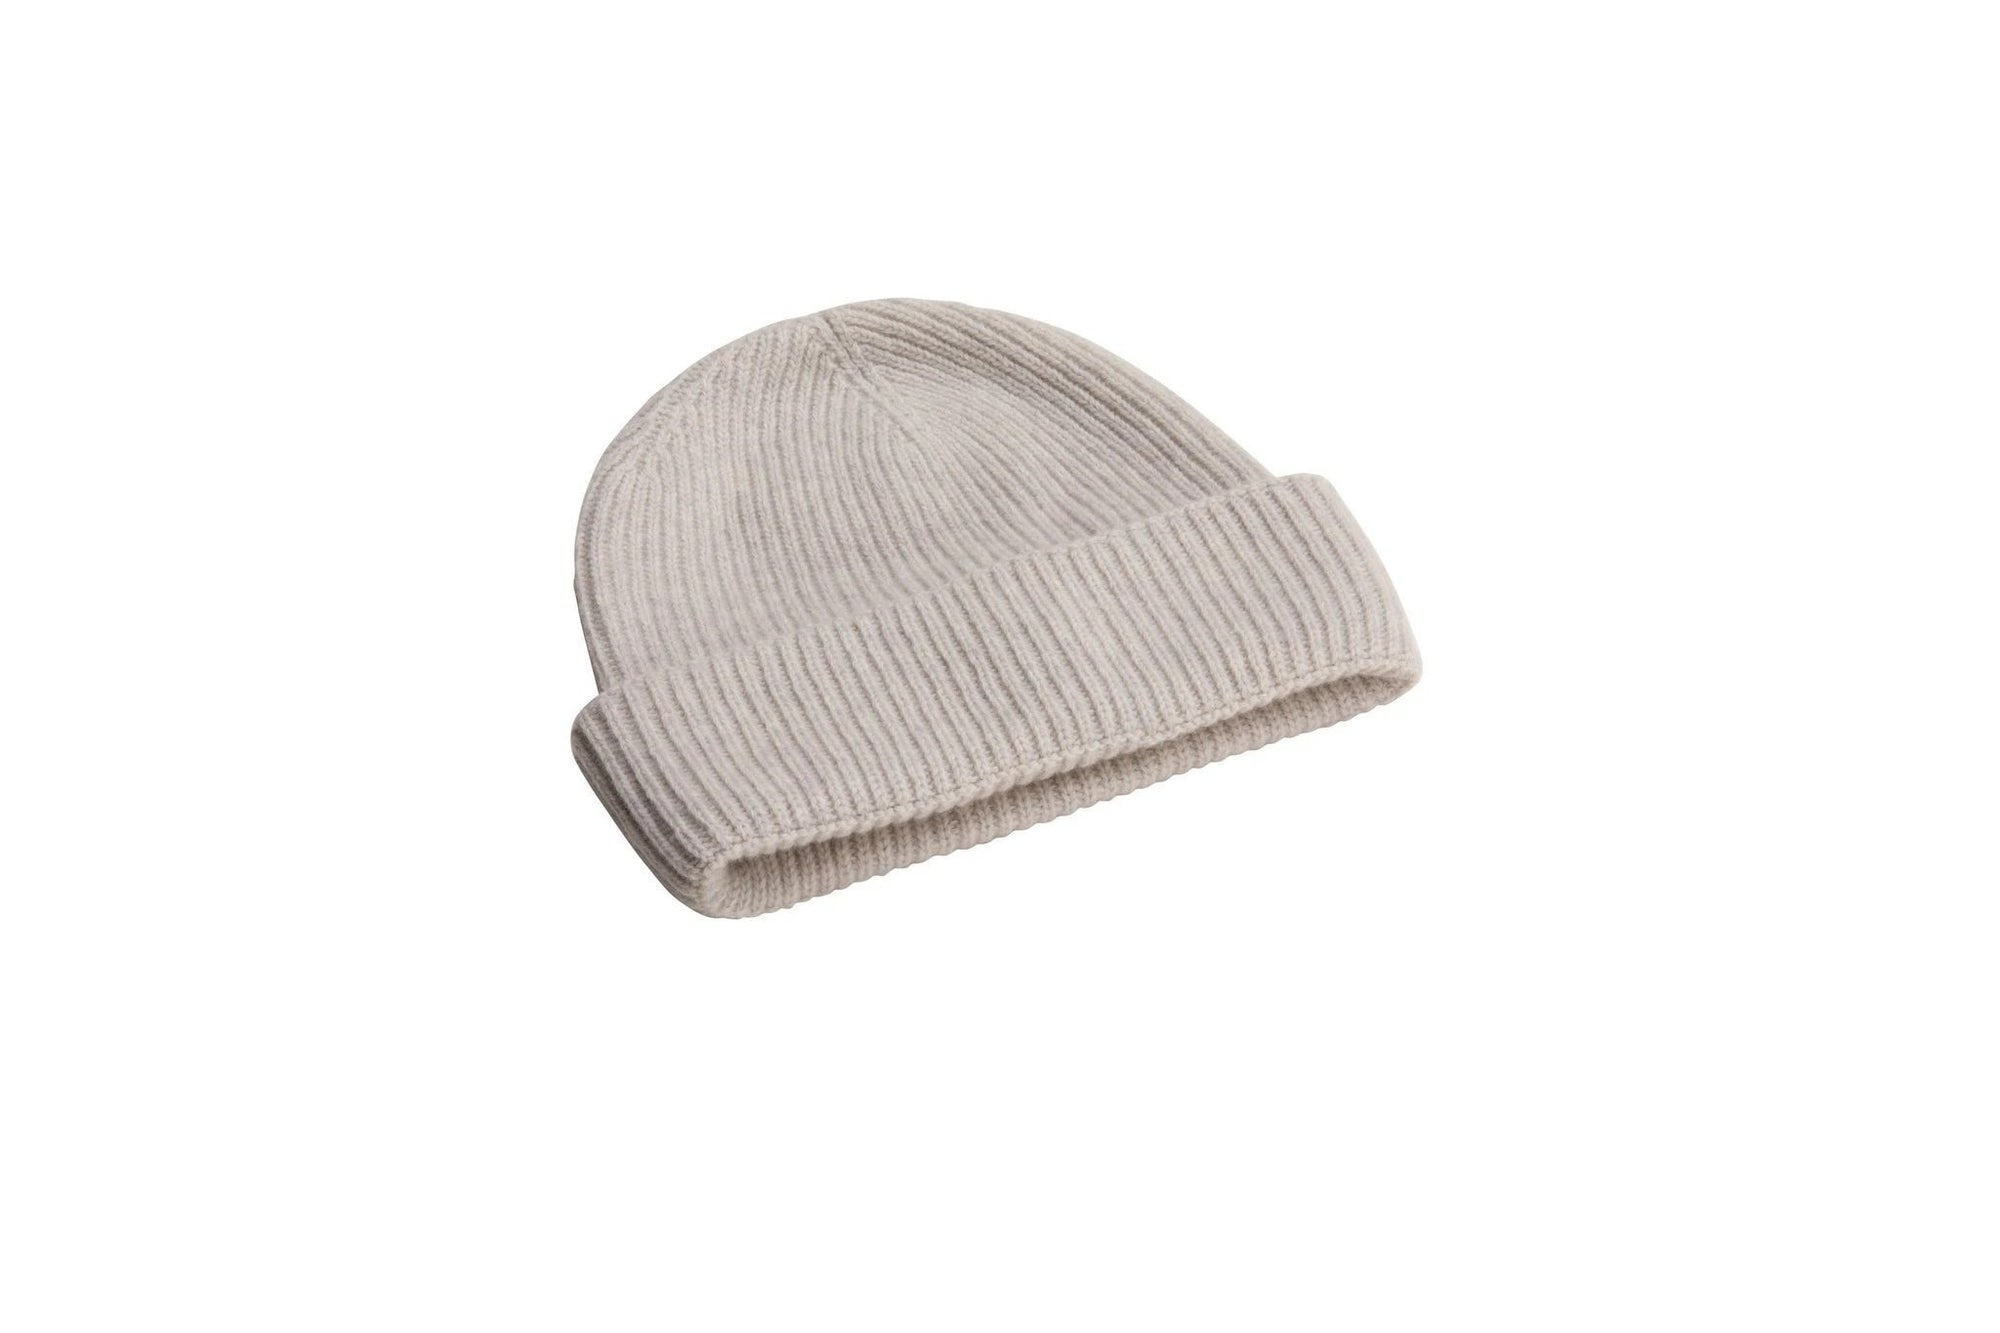 North Outdoor - Kulo Beanie - 100% Merino Wool - Made in Finland - Weekendbee - sustainable sportswear